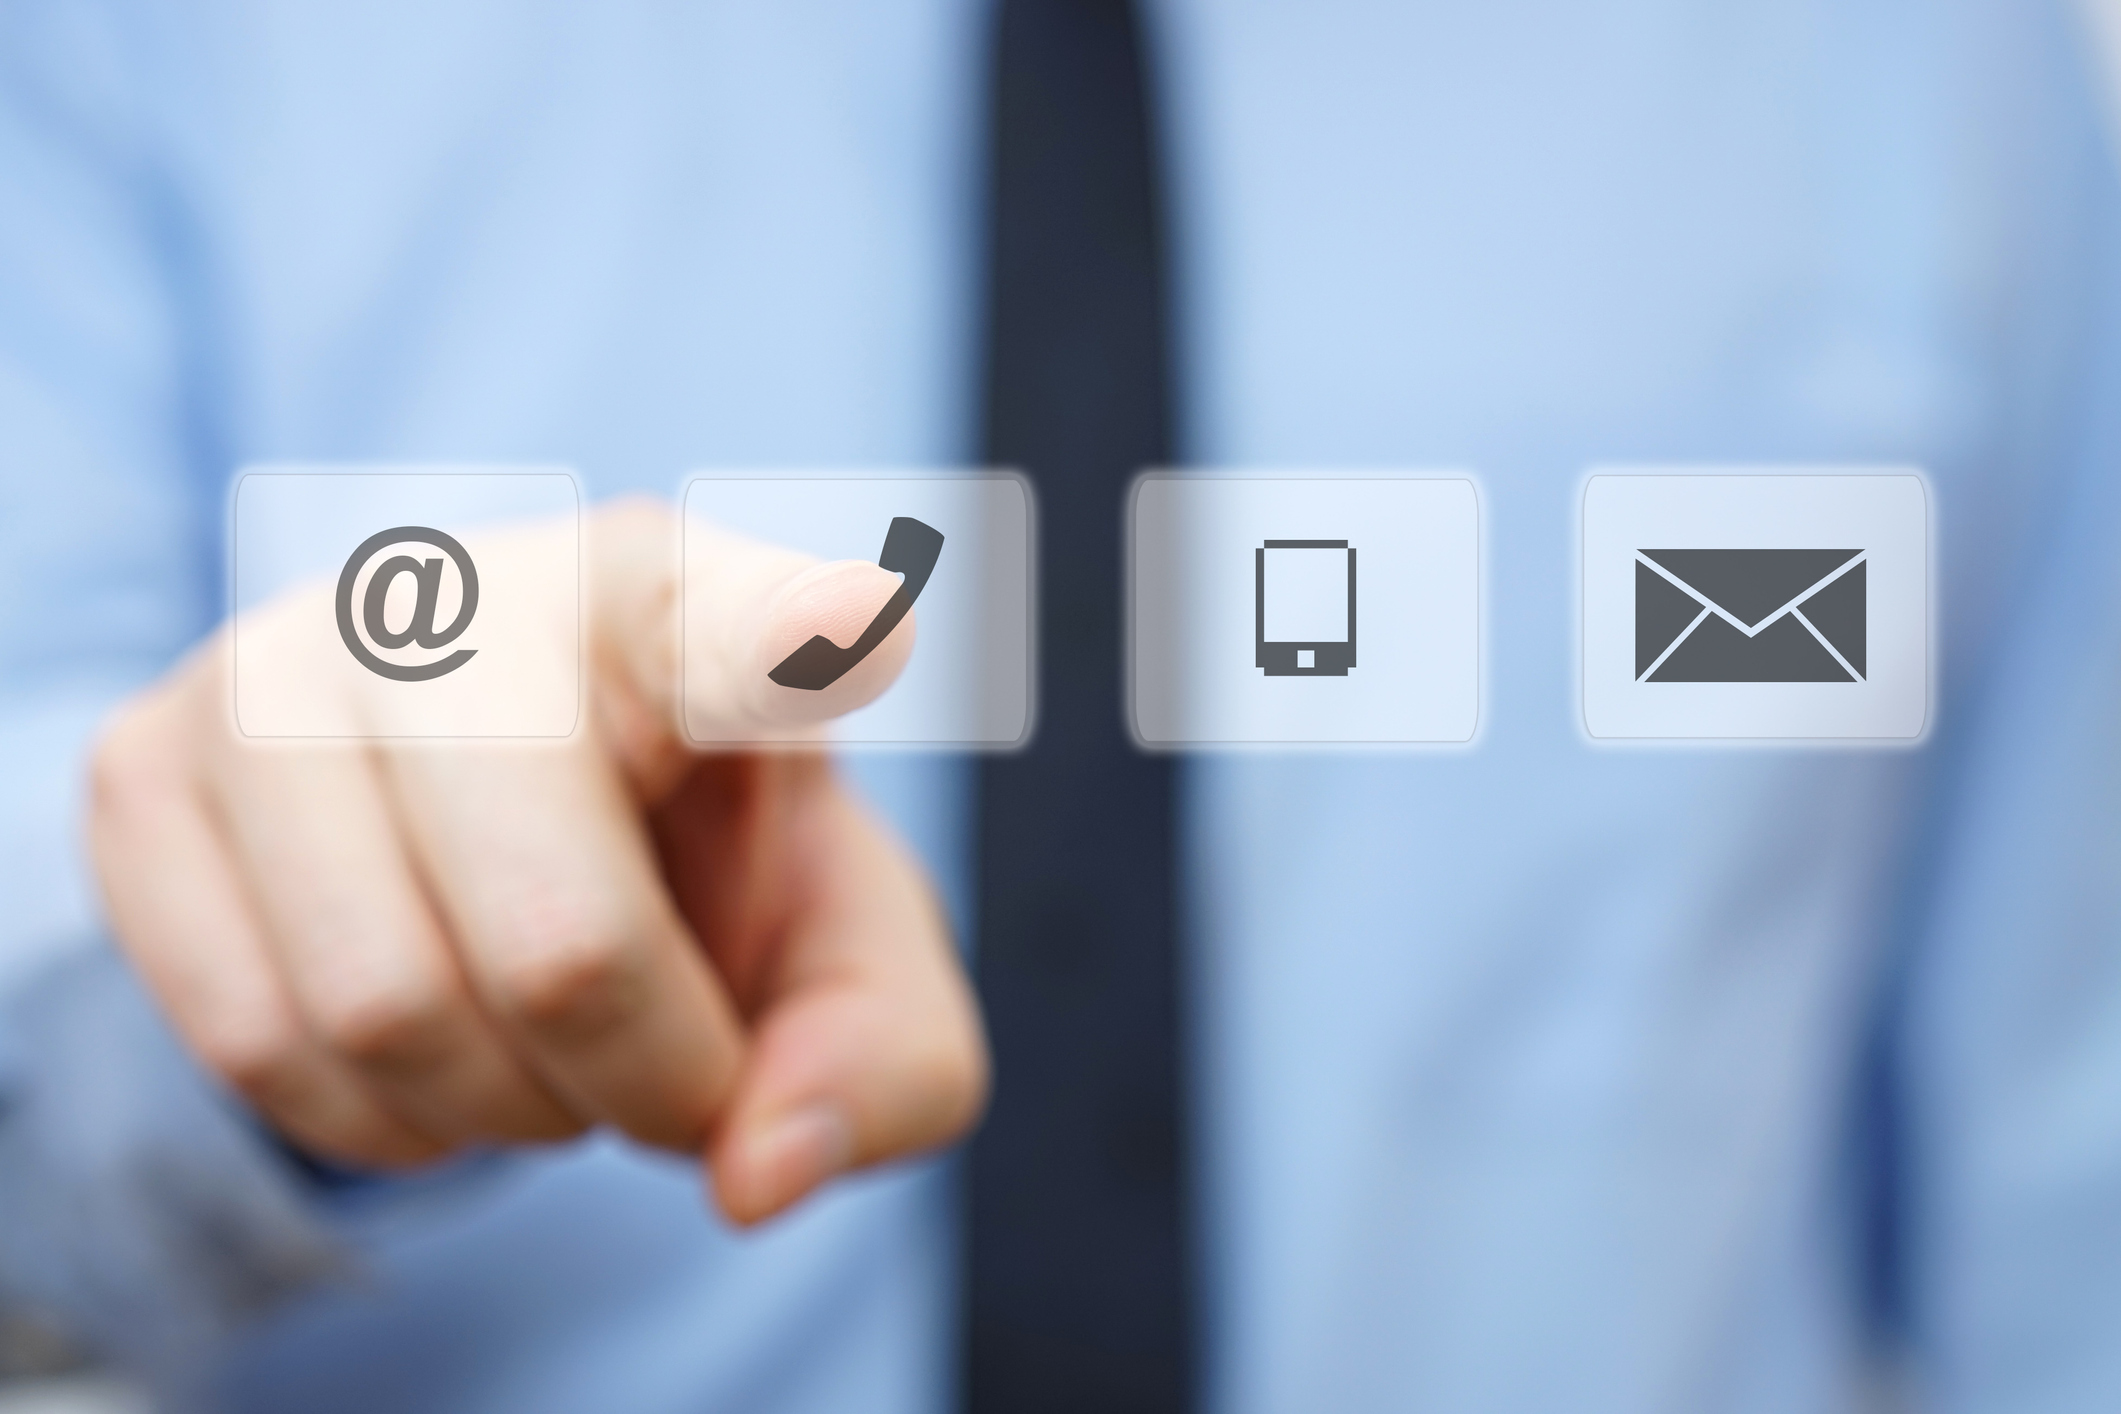 How You Can Make Your Contact Page Stand Out